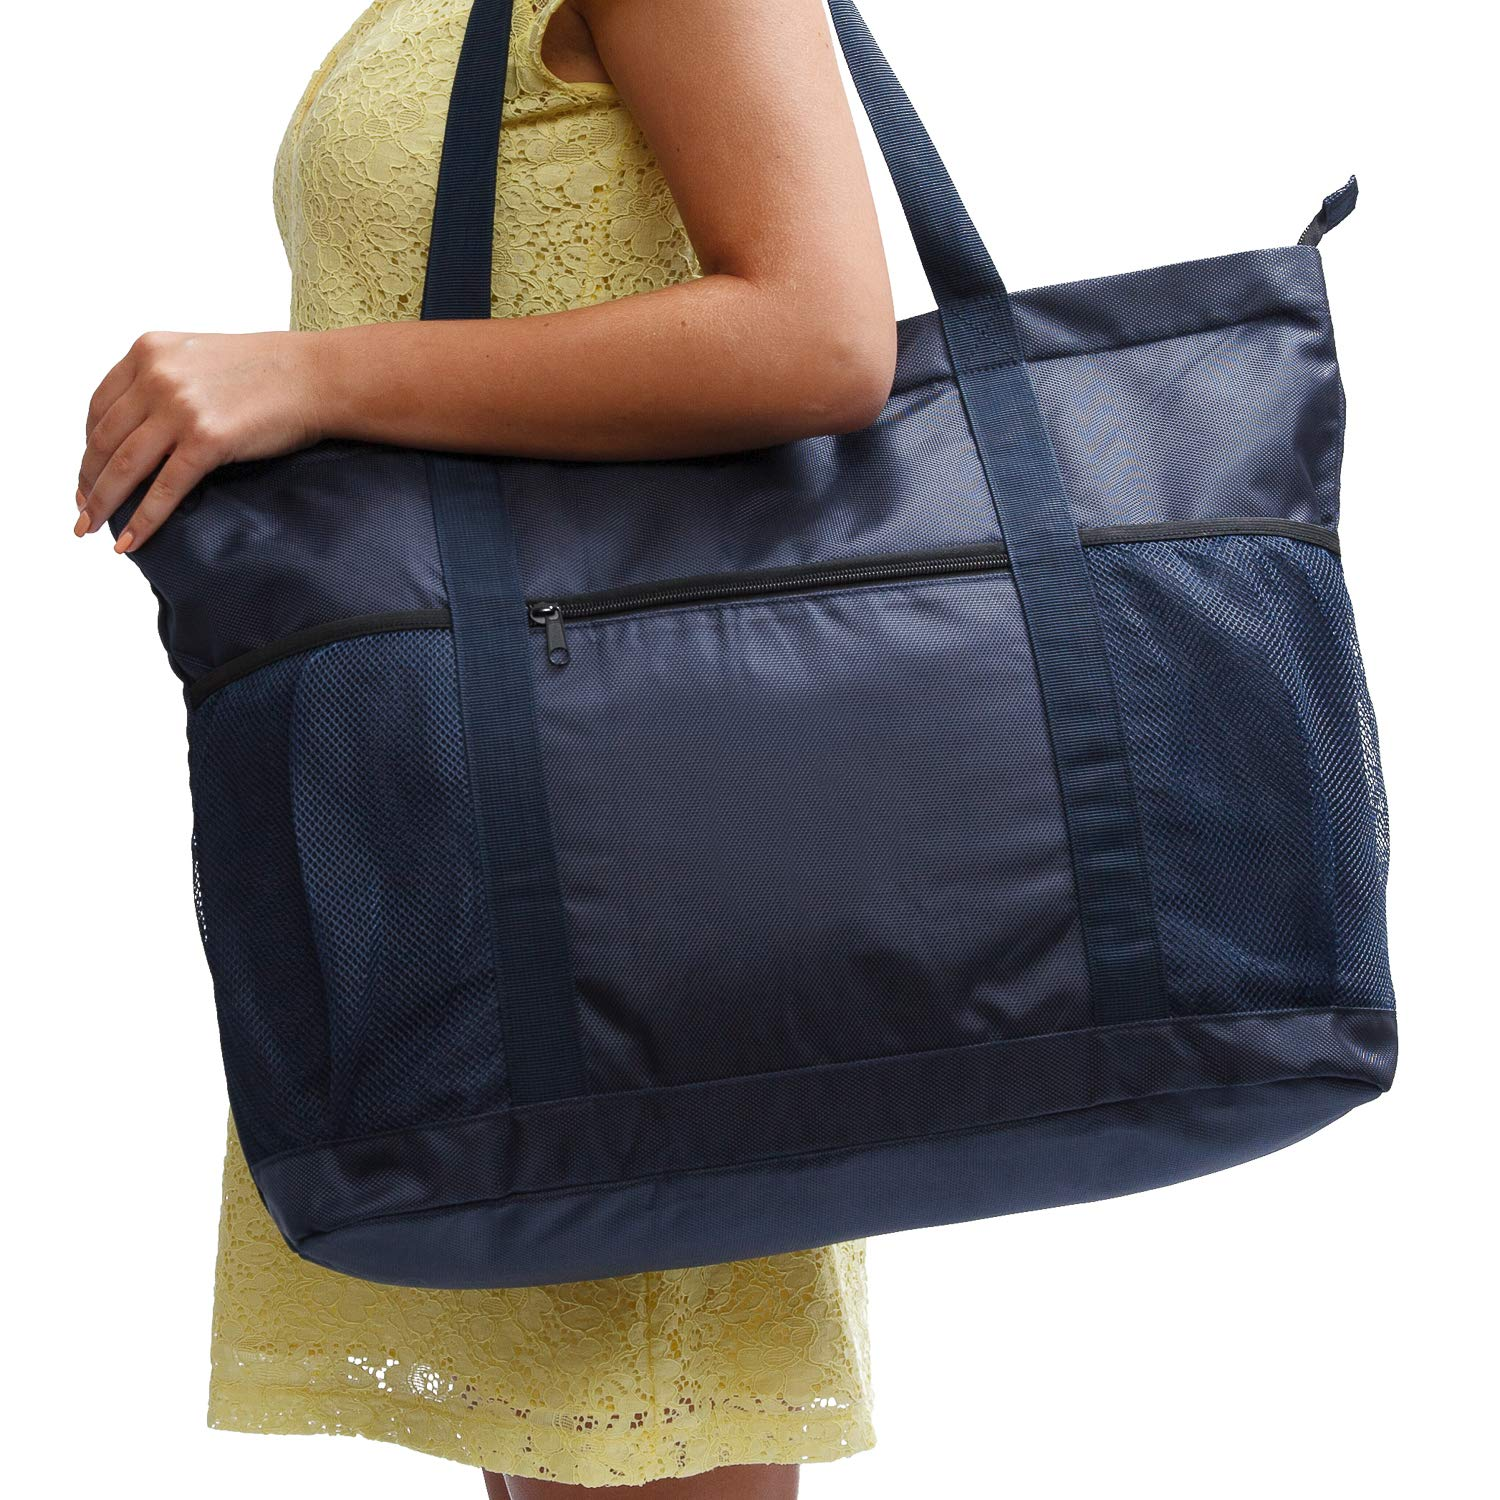 Large Beach Bag With Zipper - XL Foldable Tote Bag For Travel And Shopping - Large Tote Bag With Many Pockets (Dark Navy)